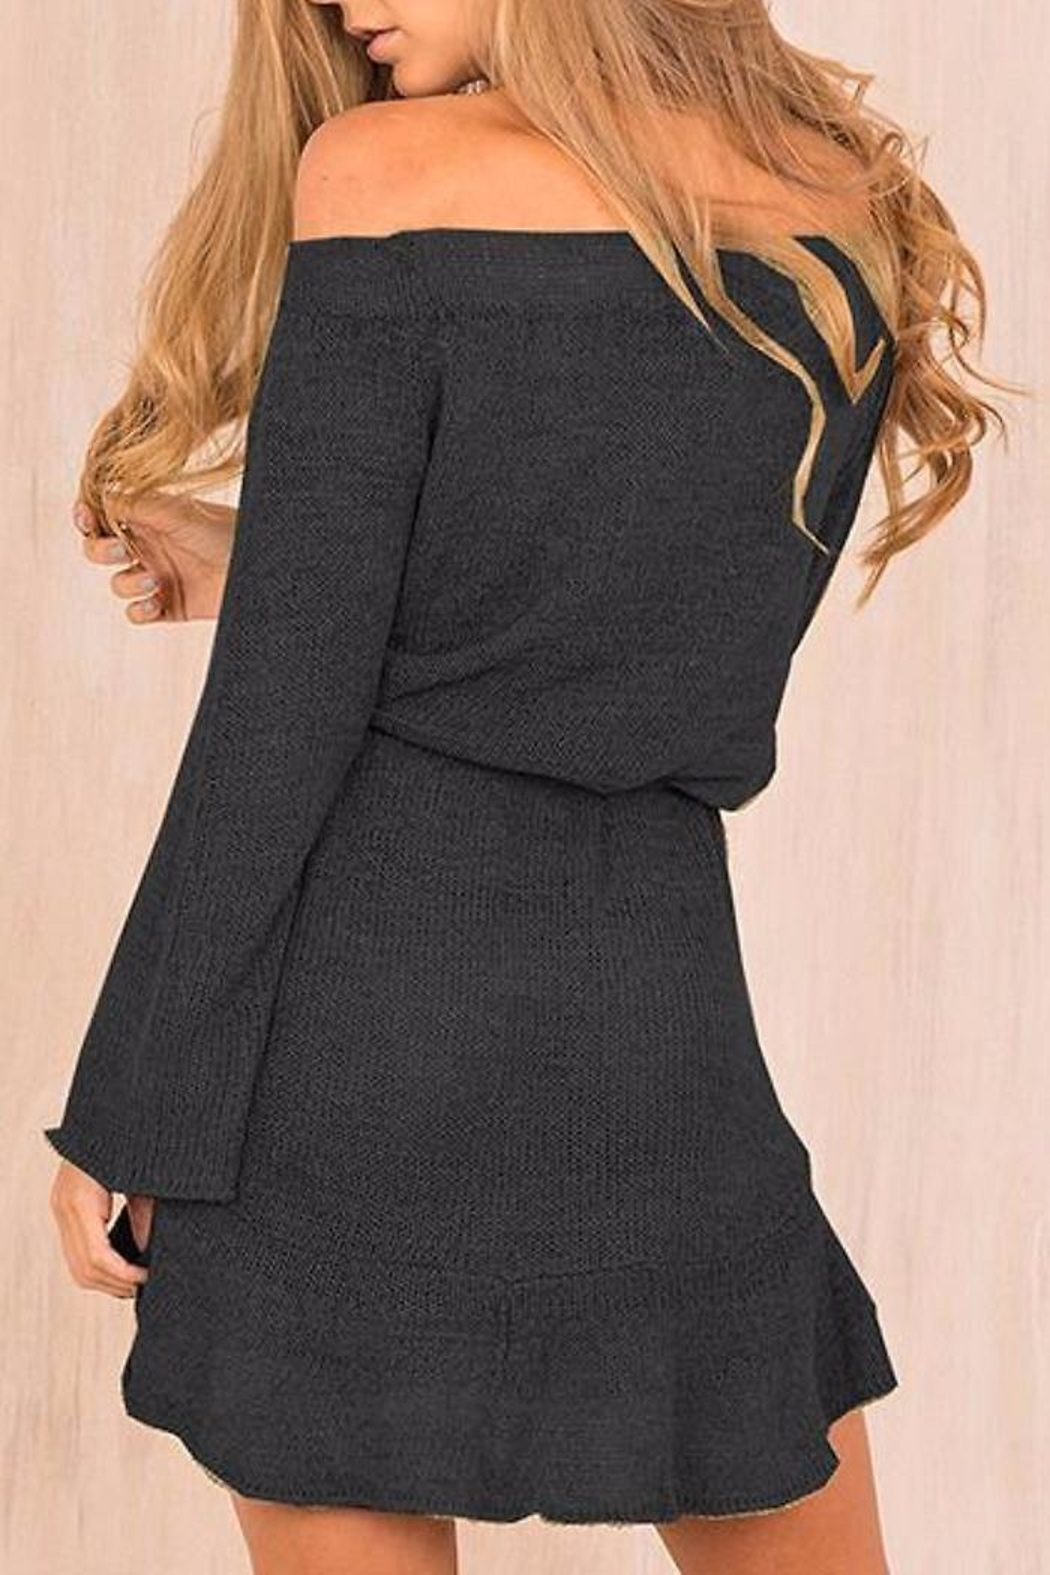 People Outfitter Off-Shoulder Knit Dress - Front Full Image